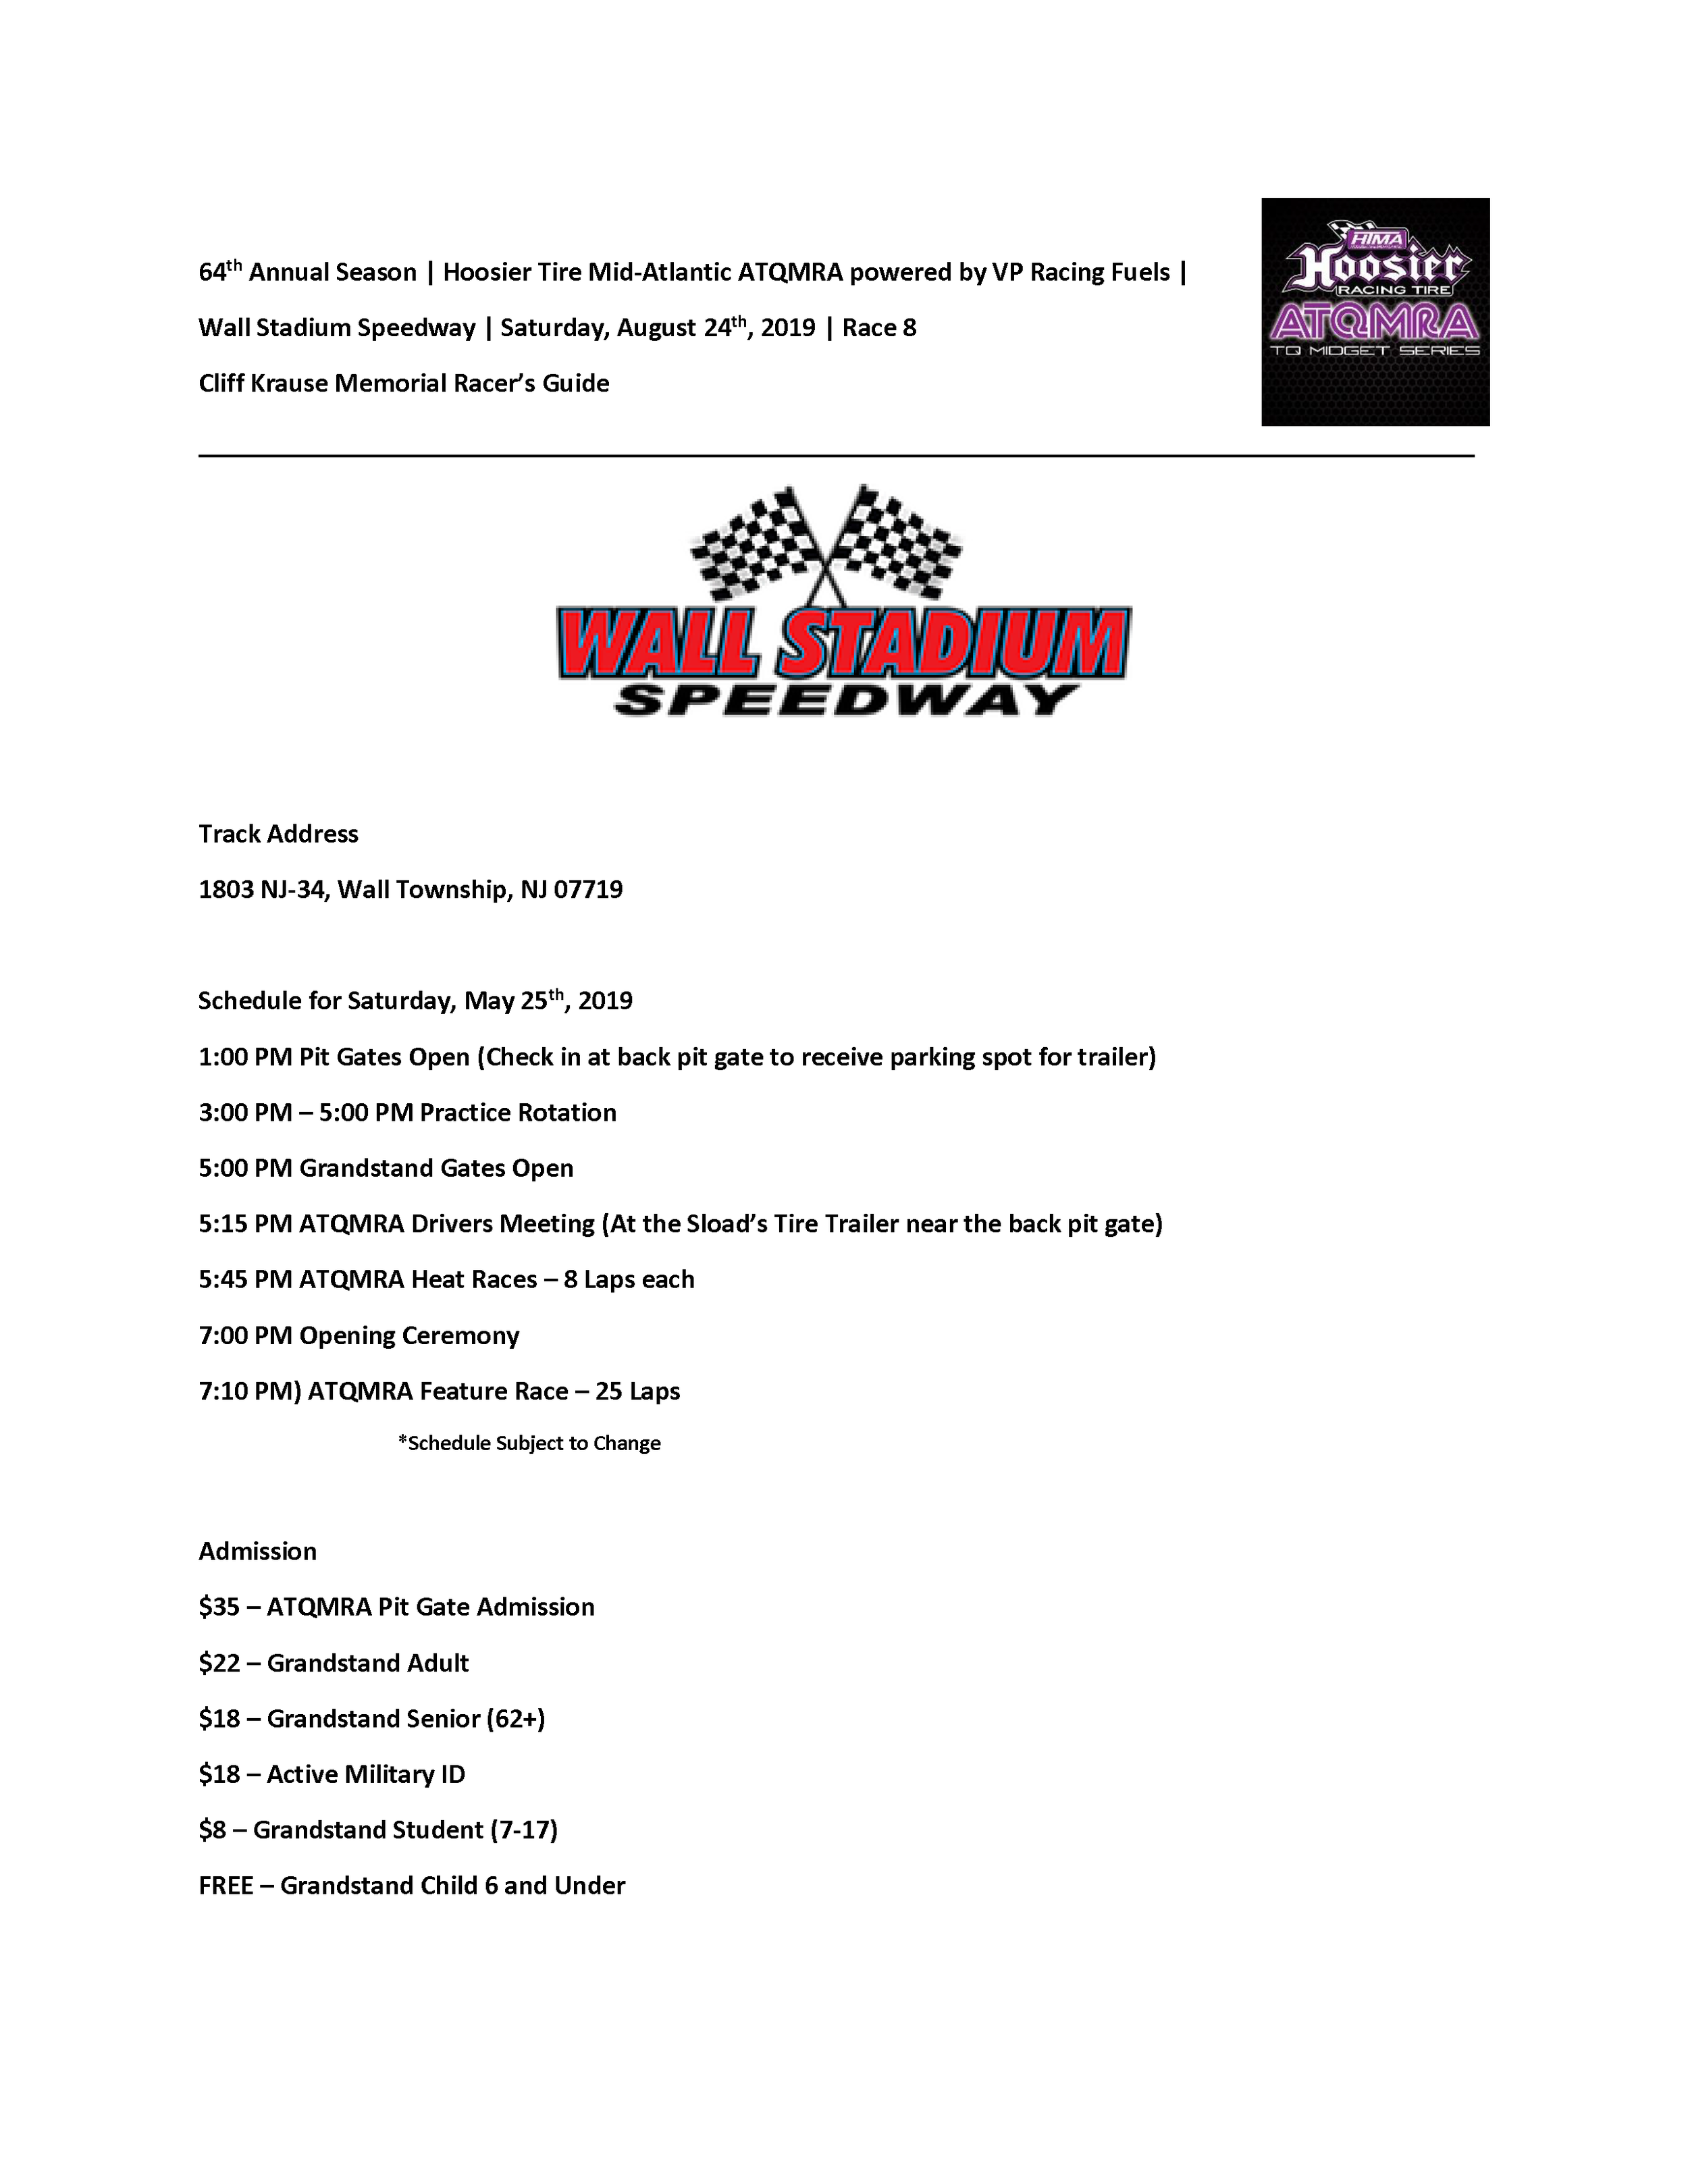 2019 Wall Stadium 2 Racer's Guide.png